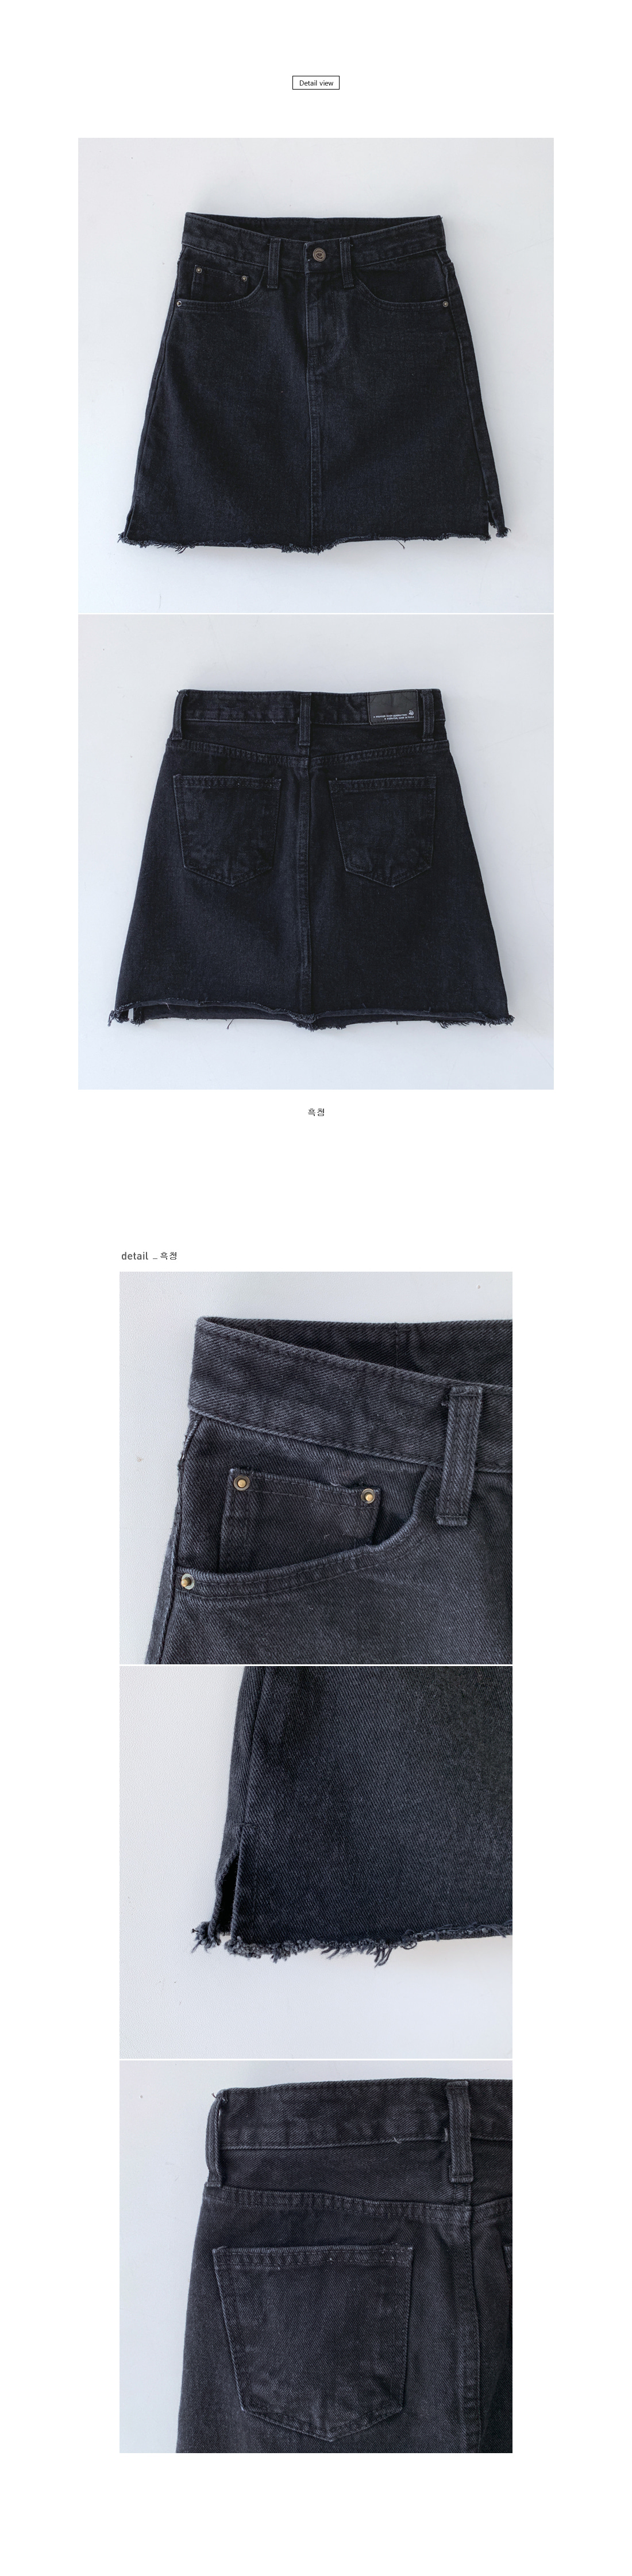 Taize Black Blue Mini Skirt